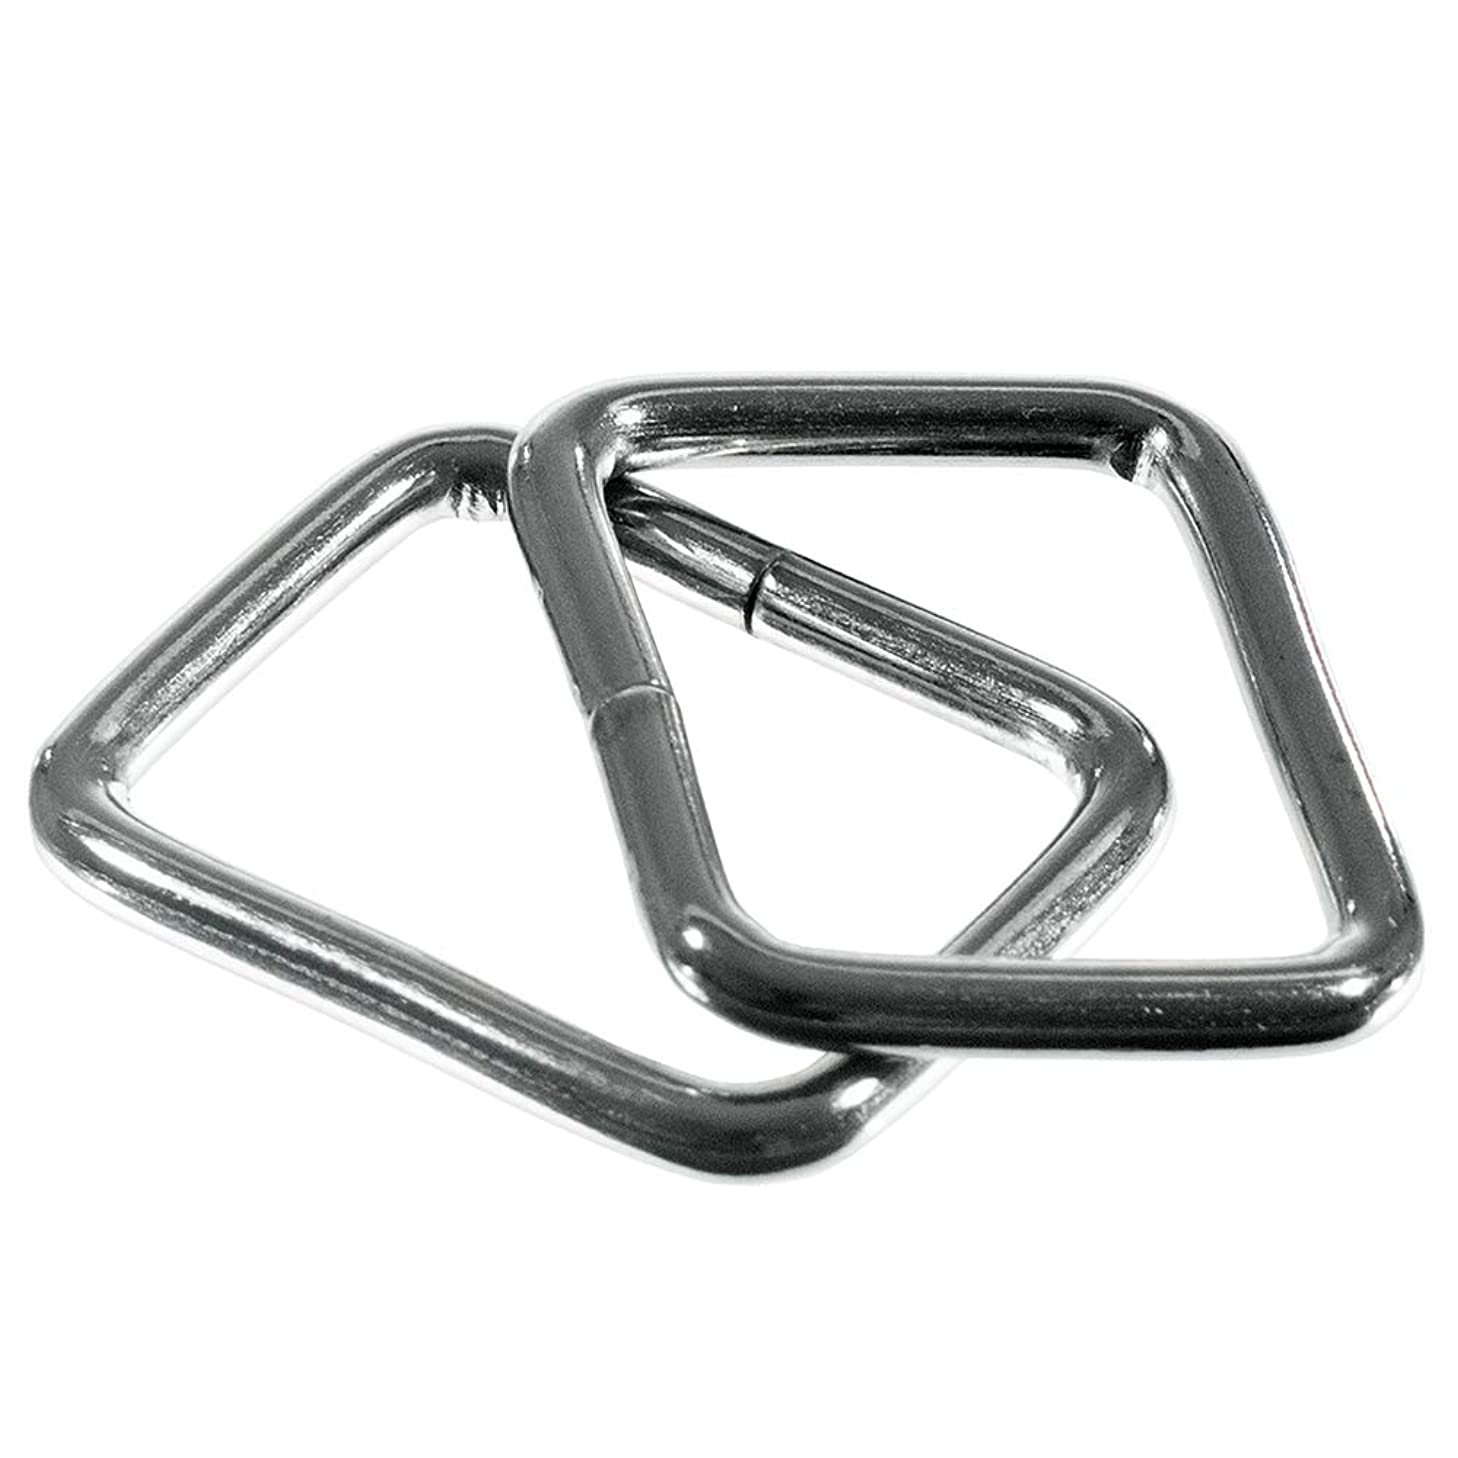 Craft County Metal Rectangle Buckle Rings – Use for Bags, Belt Loops, Straps – Heavy Duty Rectangular Cord Loop – Fits Webbing 3/4-Inch Wide – Pack Size of 20 Pieces (3/4 Inch, Silver)